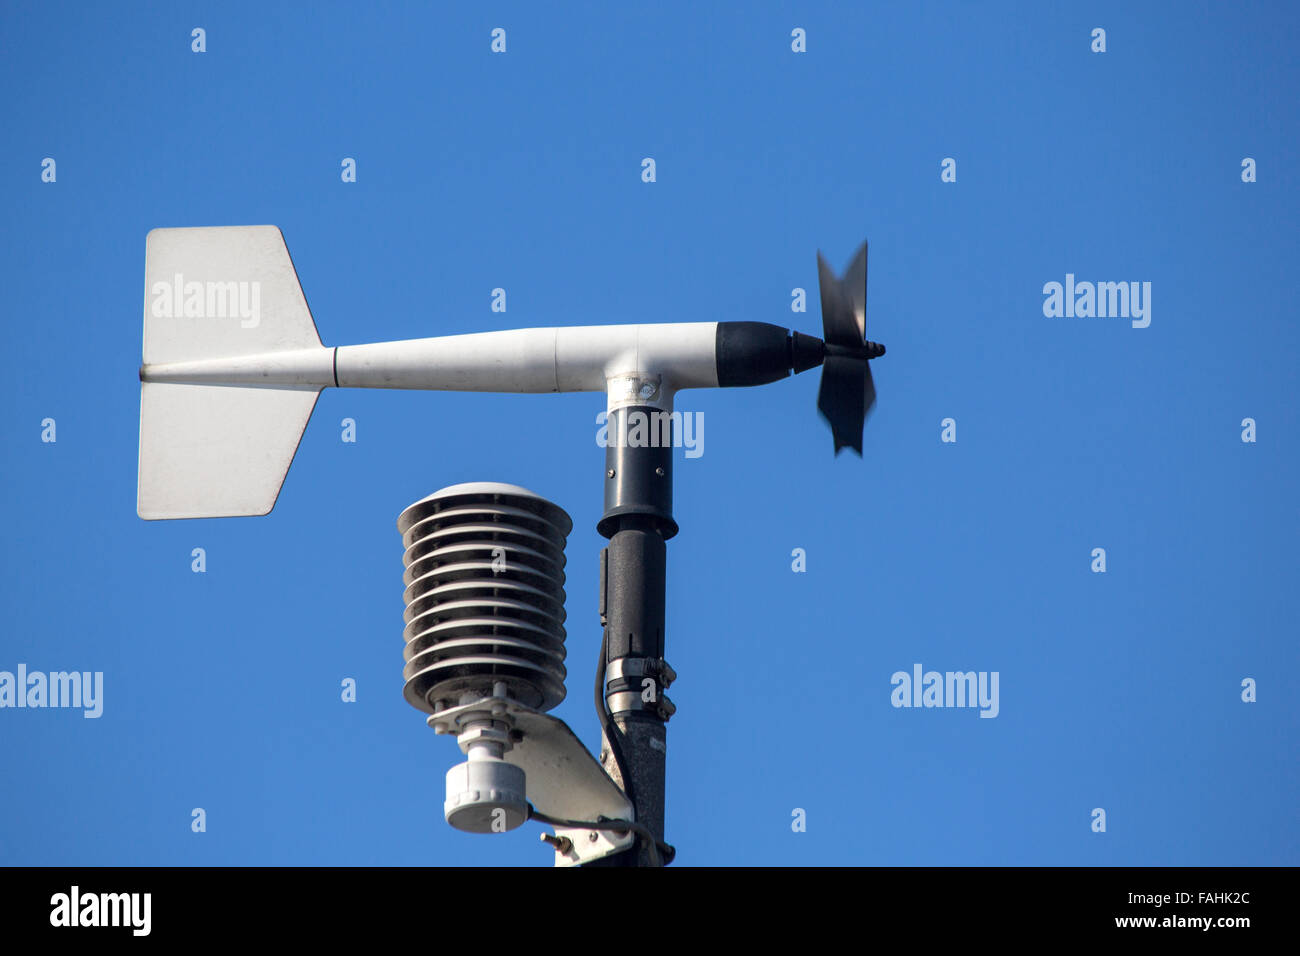 Revolving vane anemometer, a meteorological instrument used to measure the wind speed - Stock Image